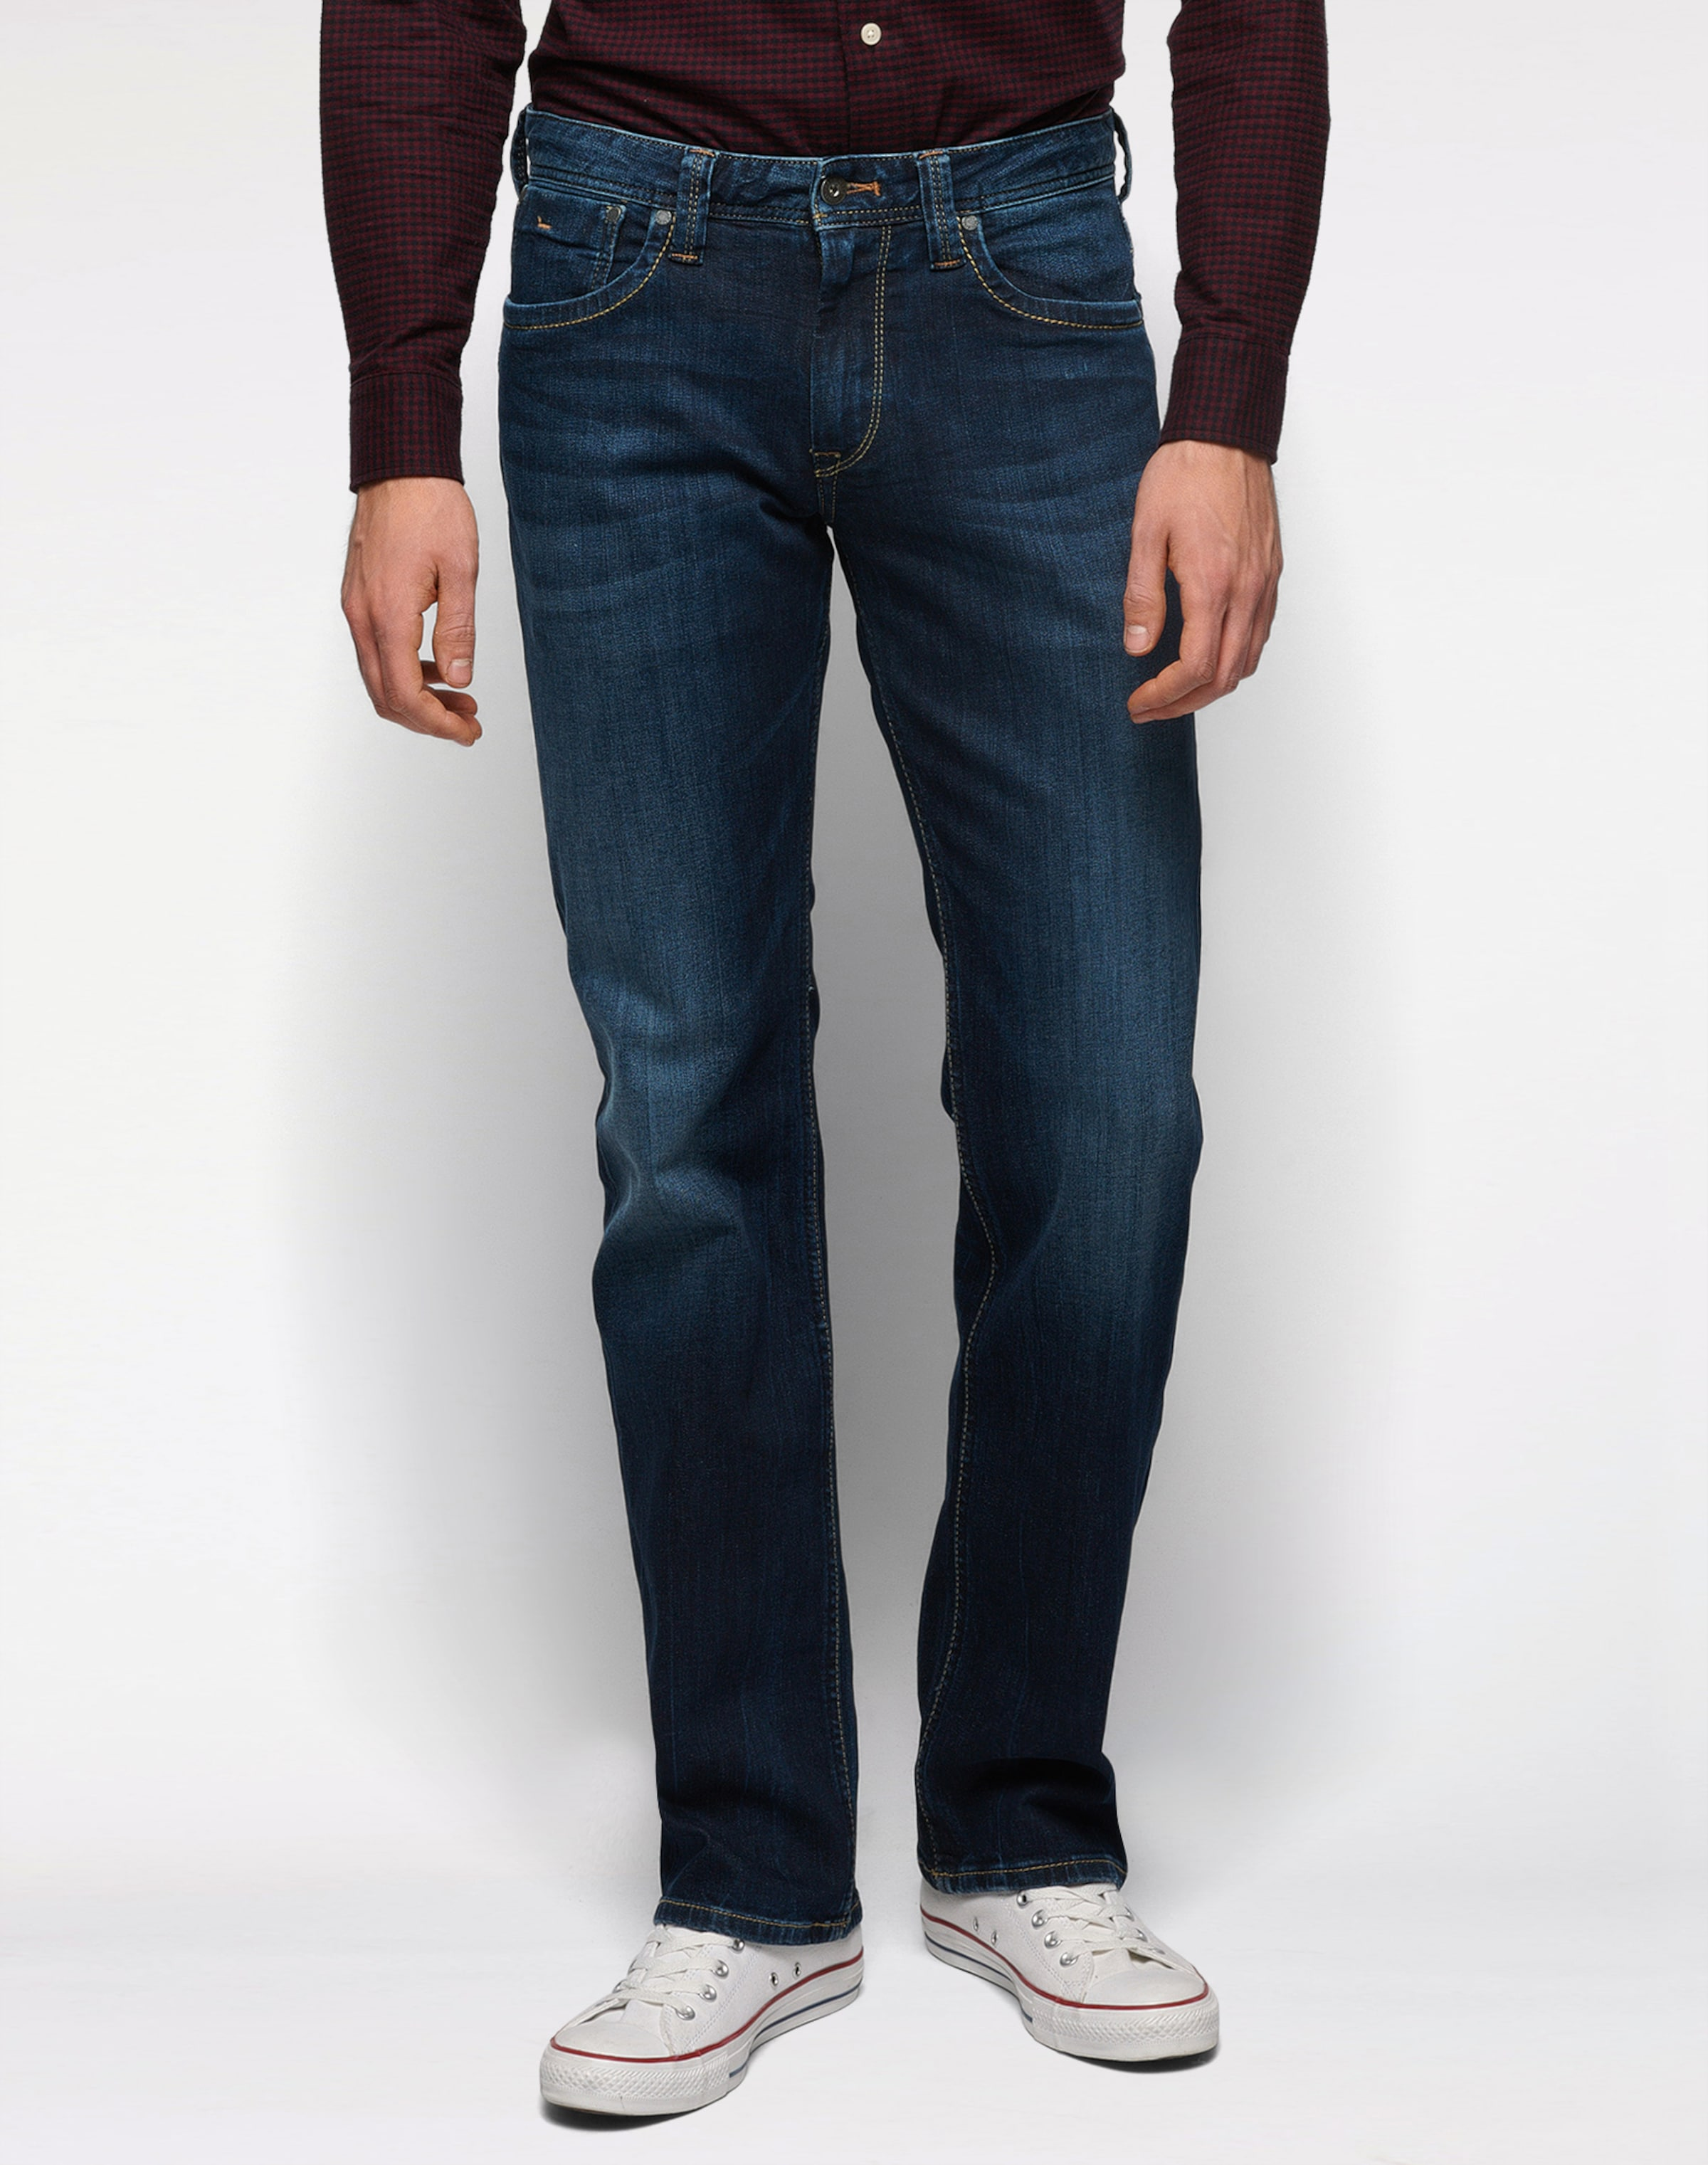 Jeans Jeans Jeans Pepe In Pepe Dunkelblau Jeans Dunkelblau In Pepe Pepe In Dunkelblau tsQdxCrBho